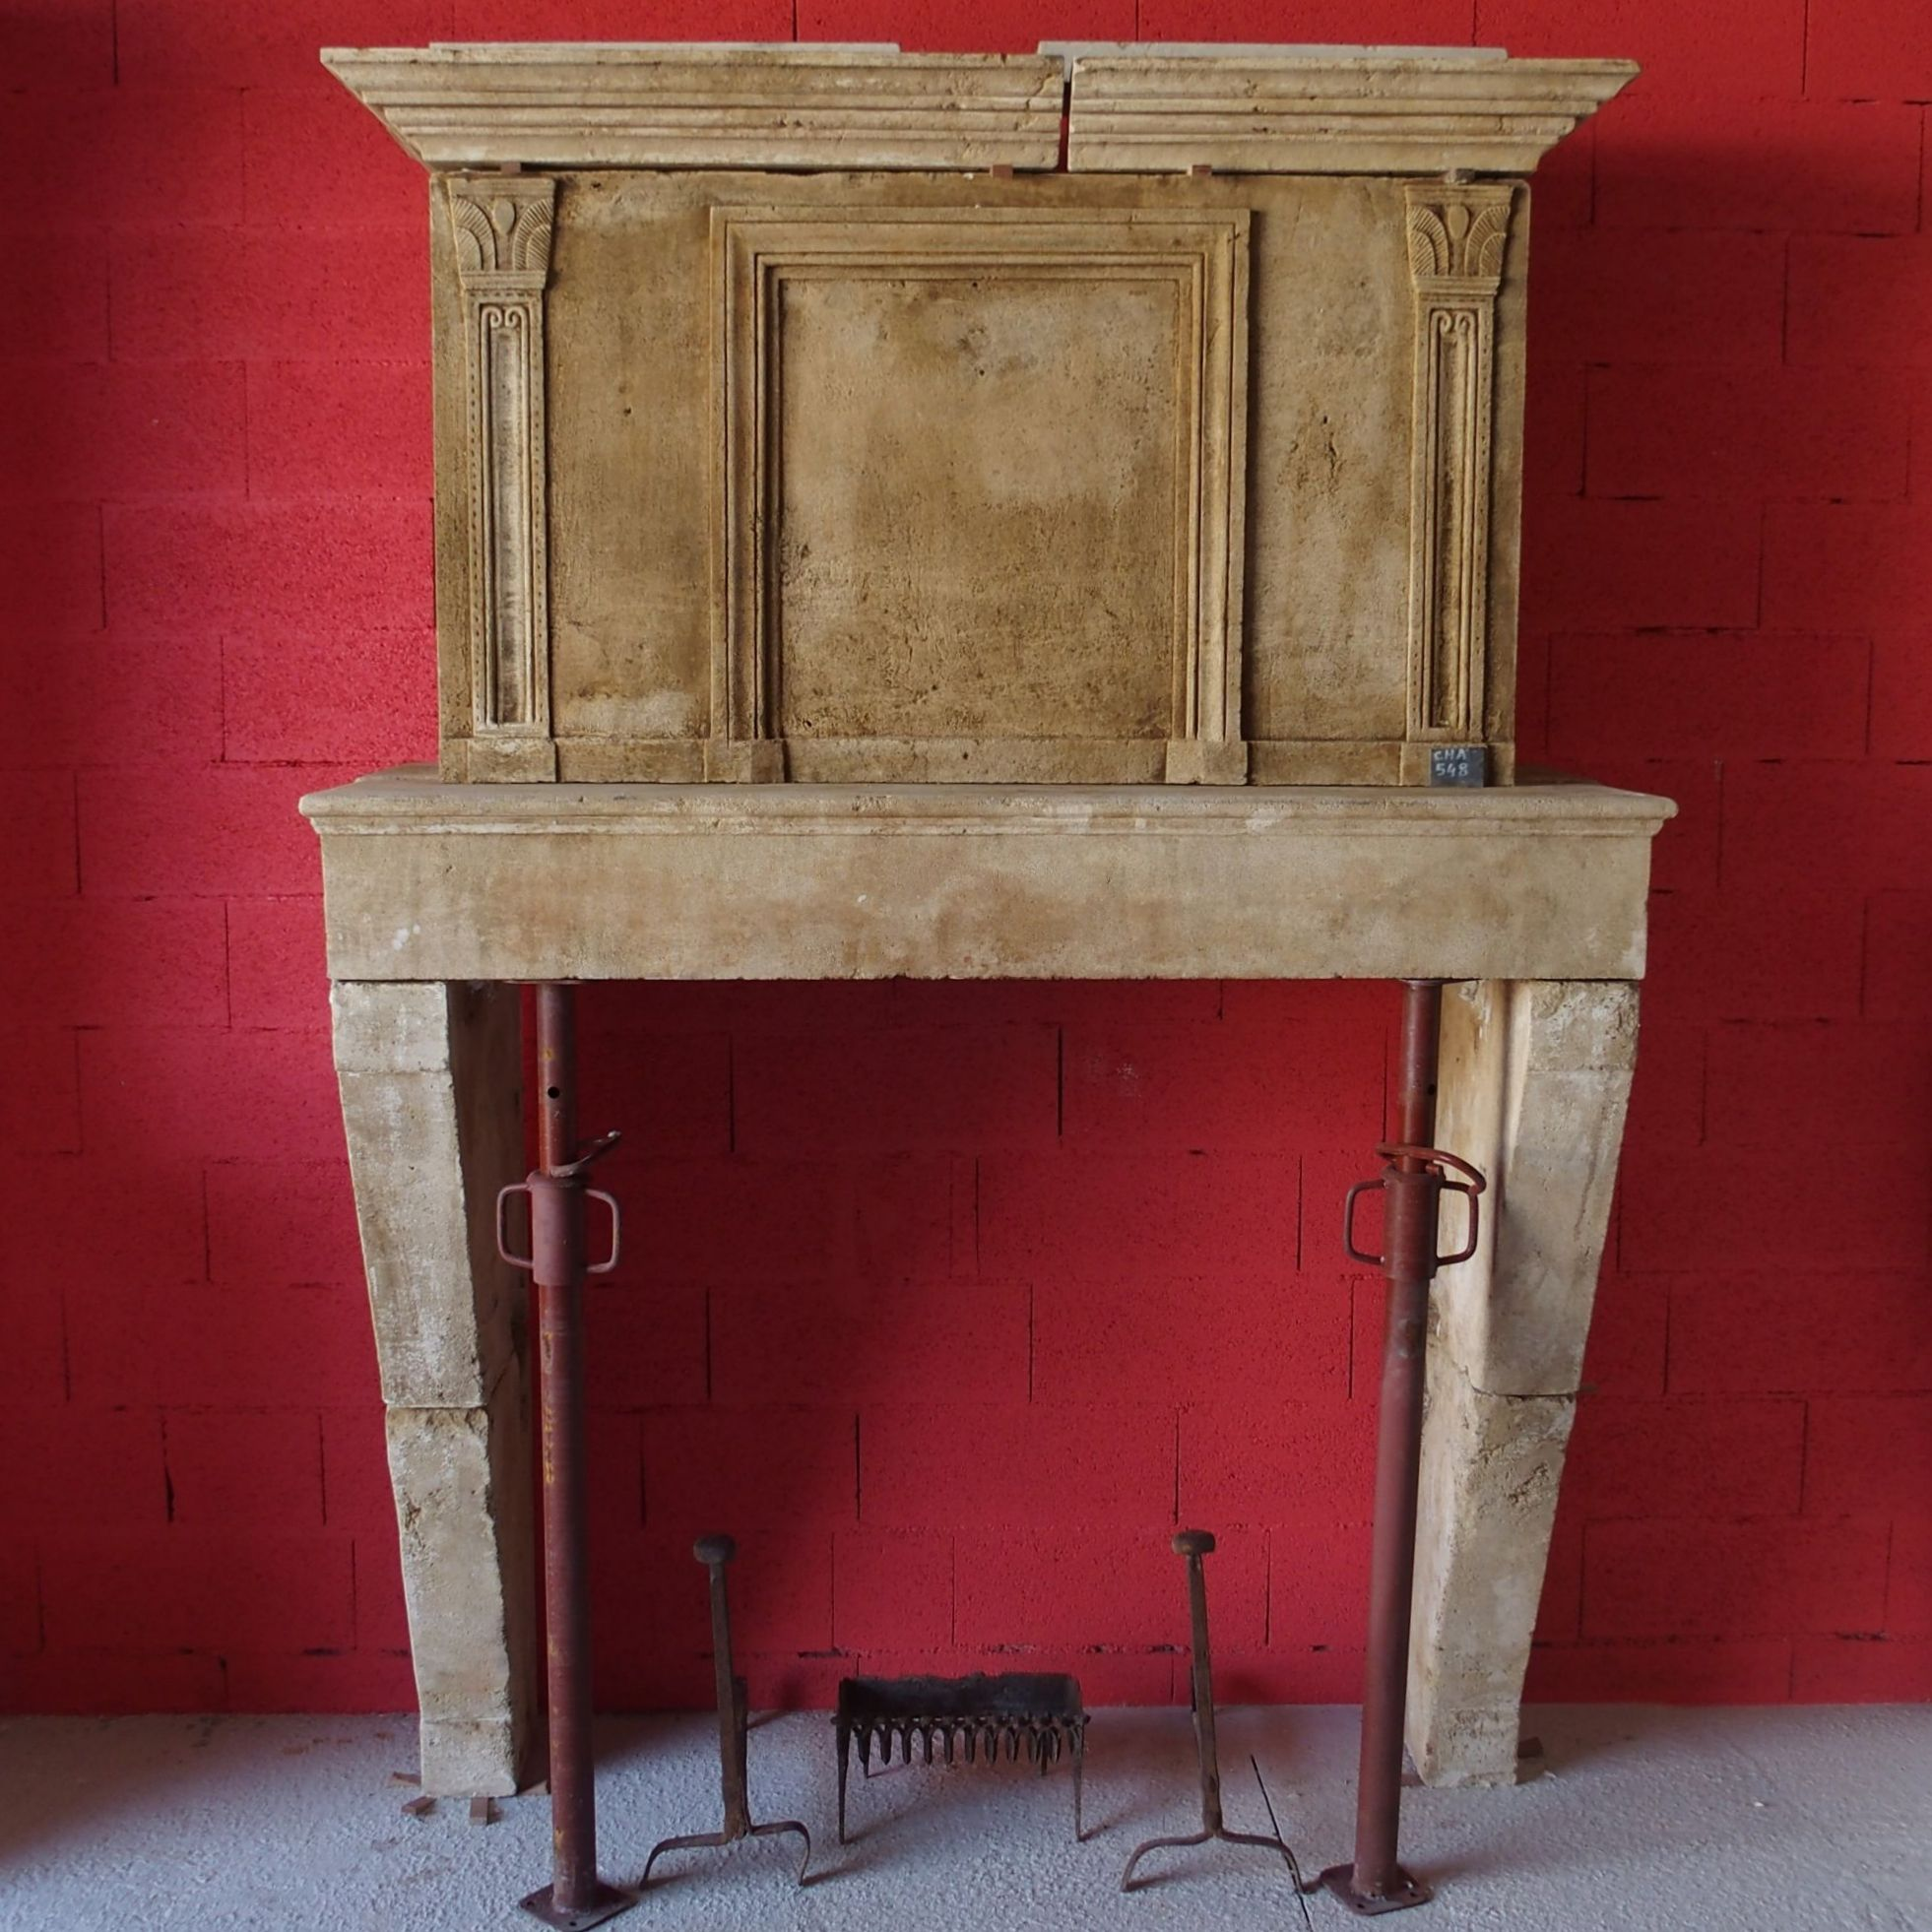 Beautiful old fireplace - rustic fireplace 17th century.